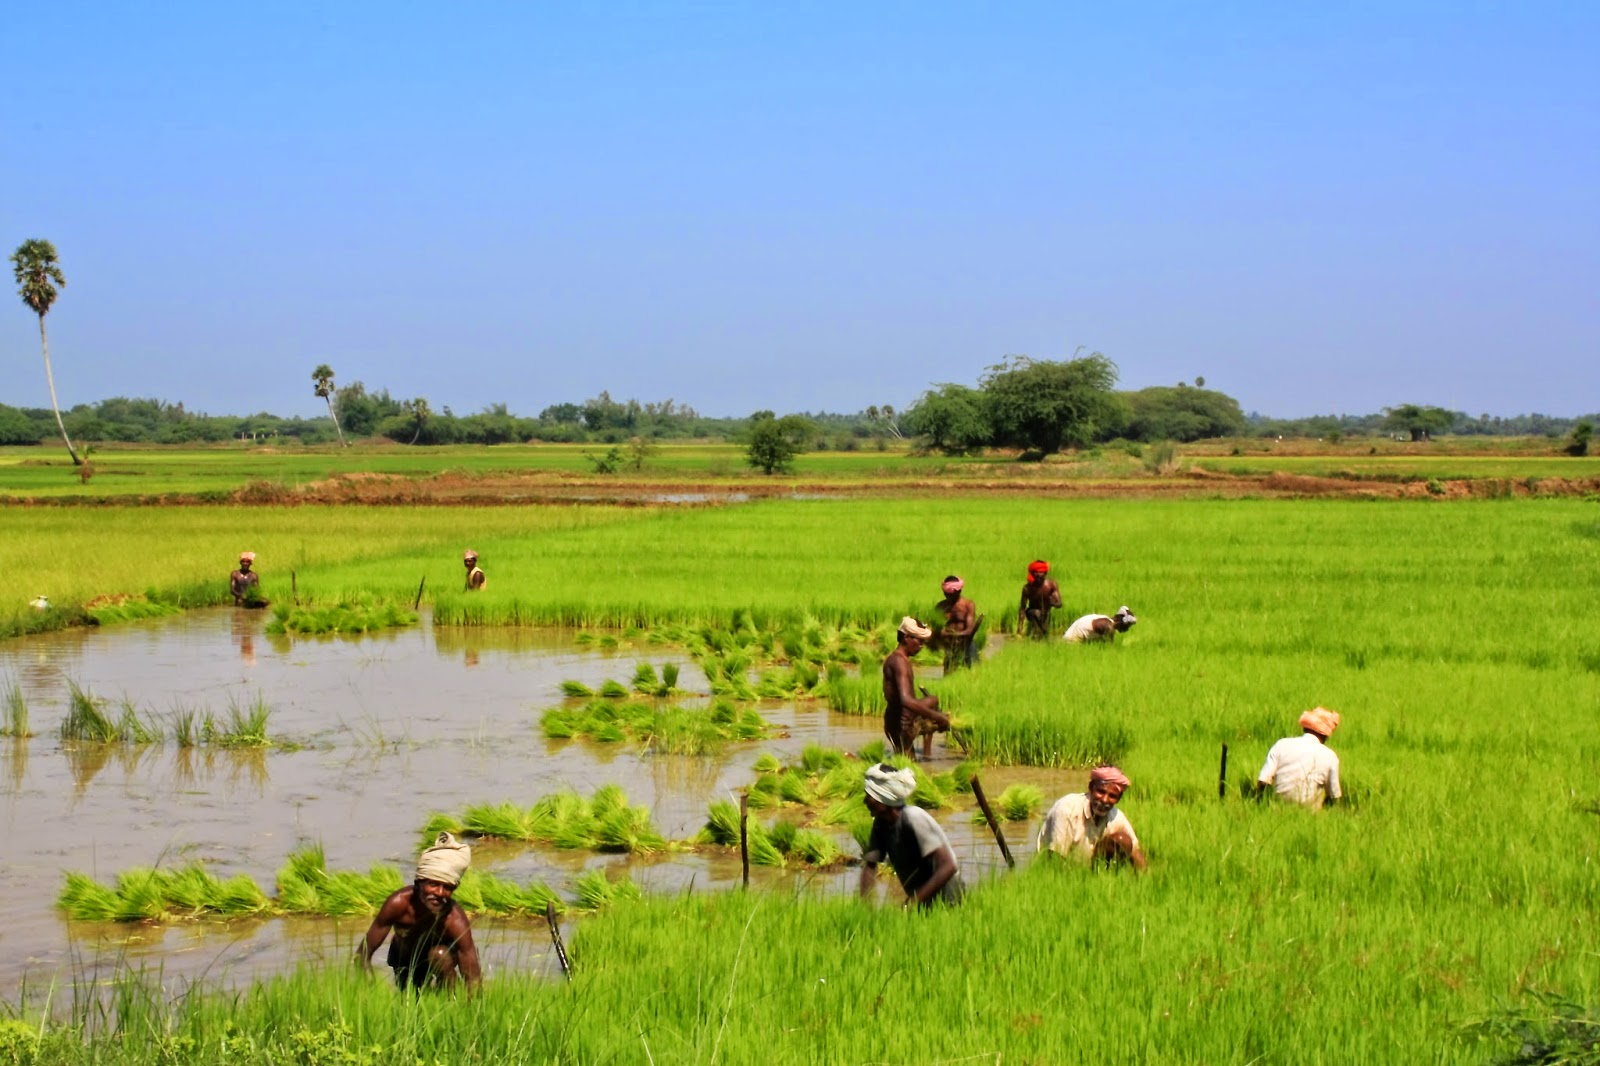 Arseninc in water and paddy fields can cause DNA damage.